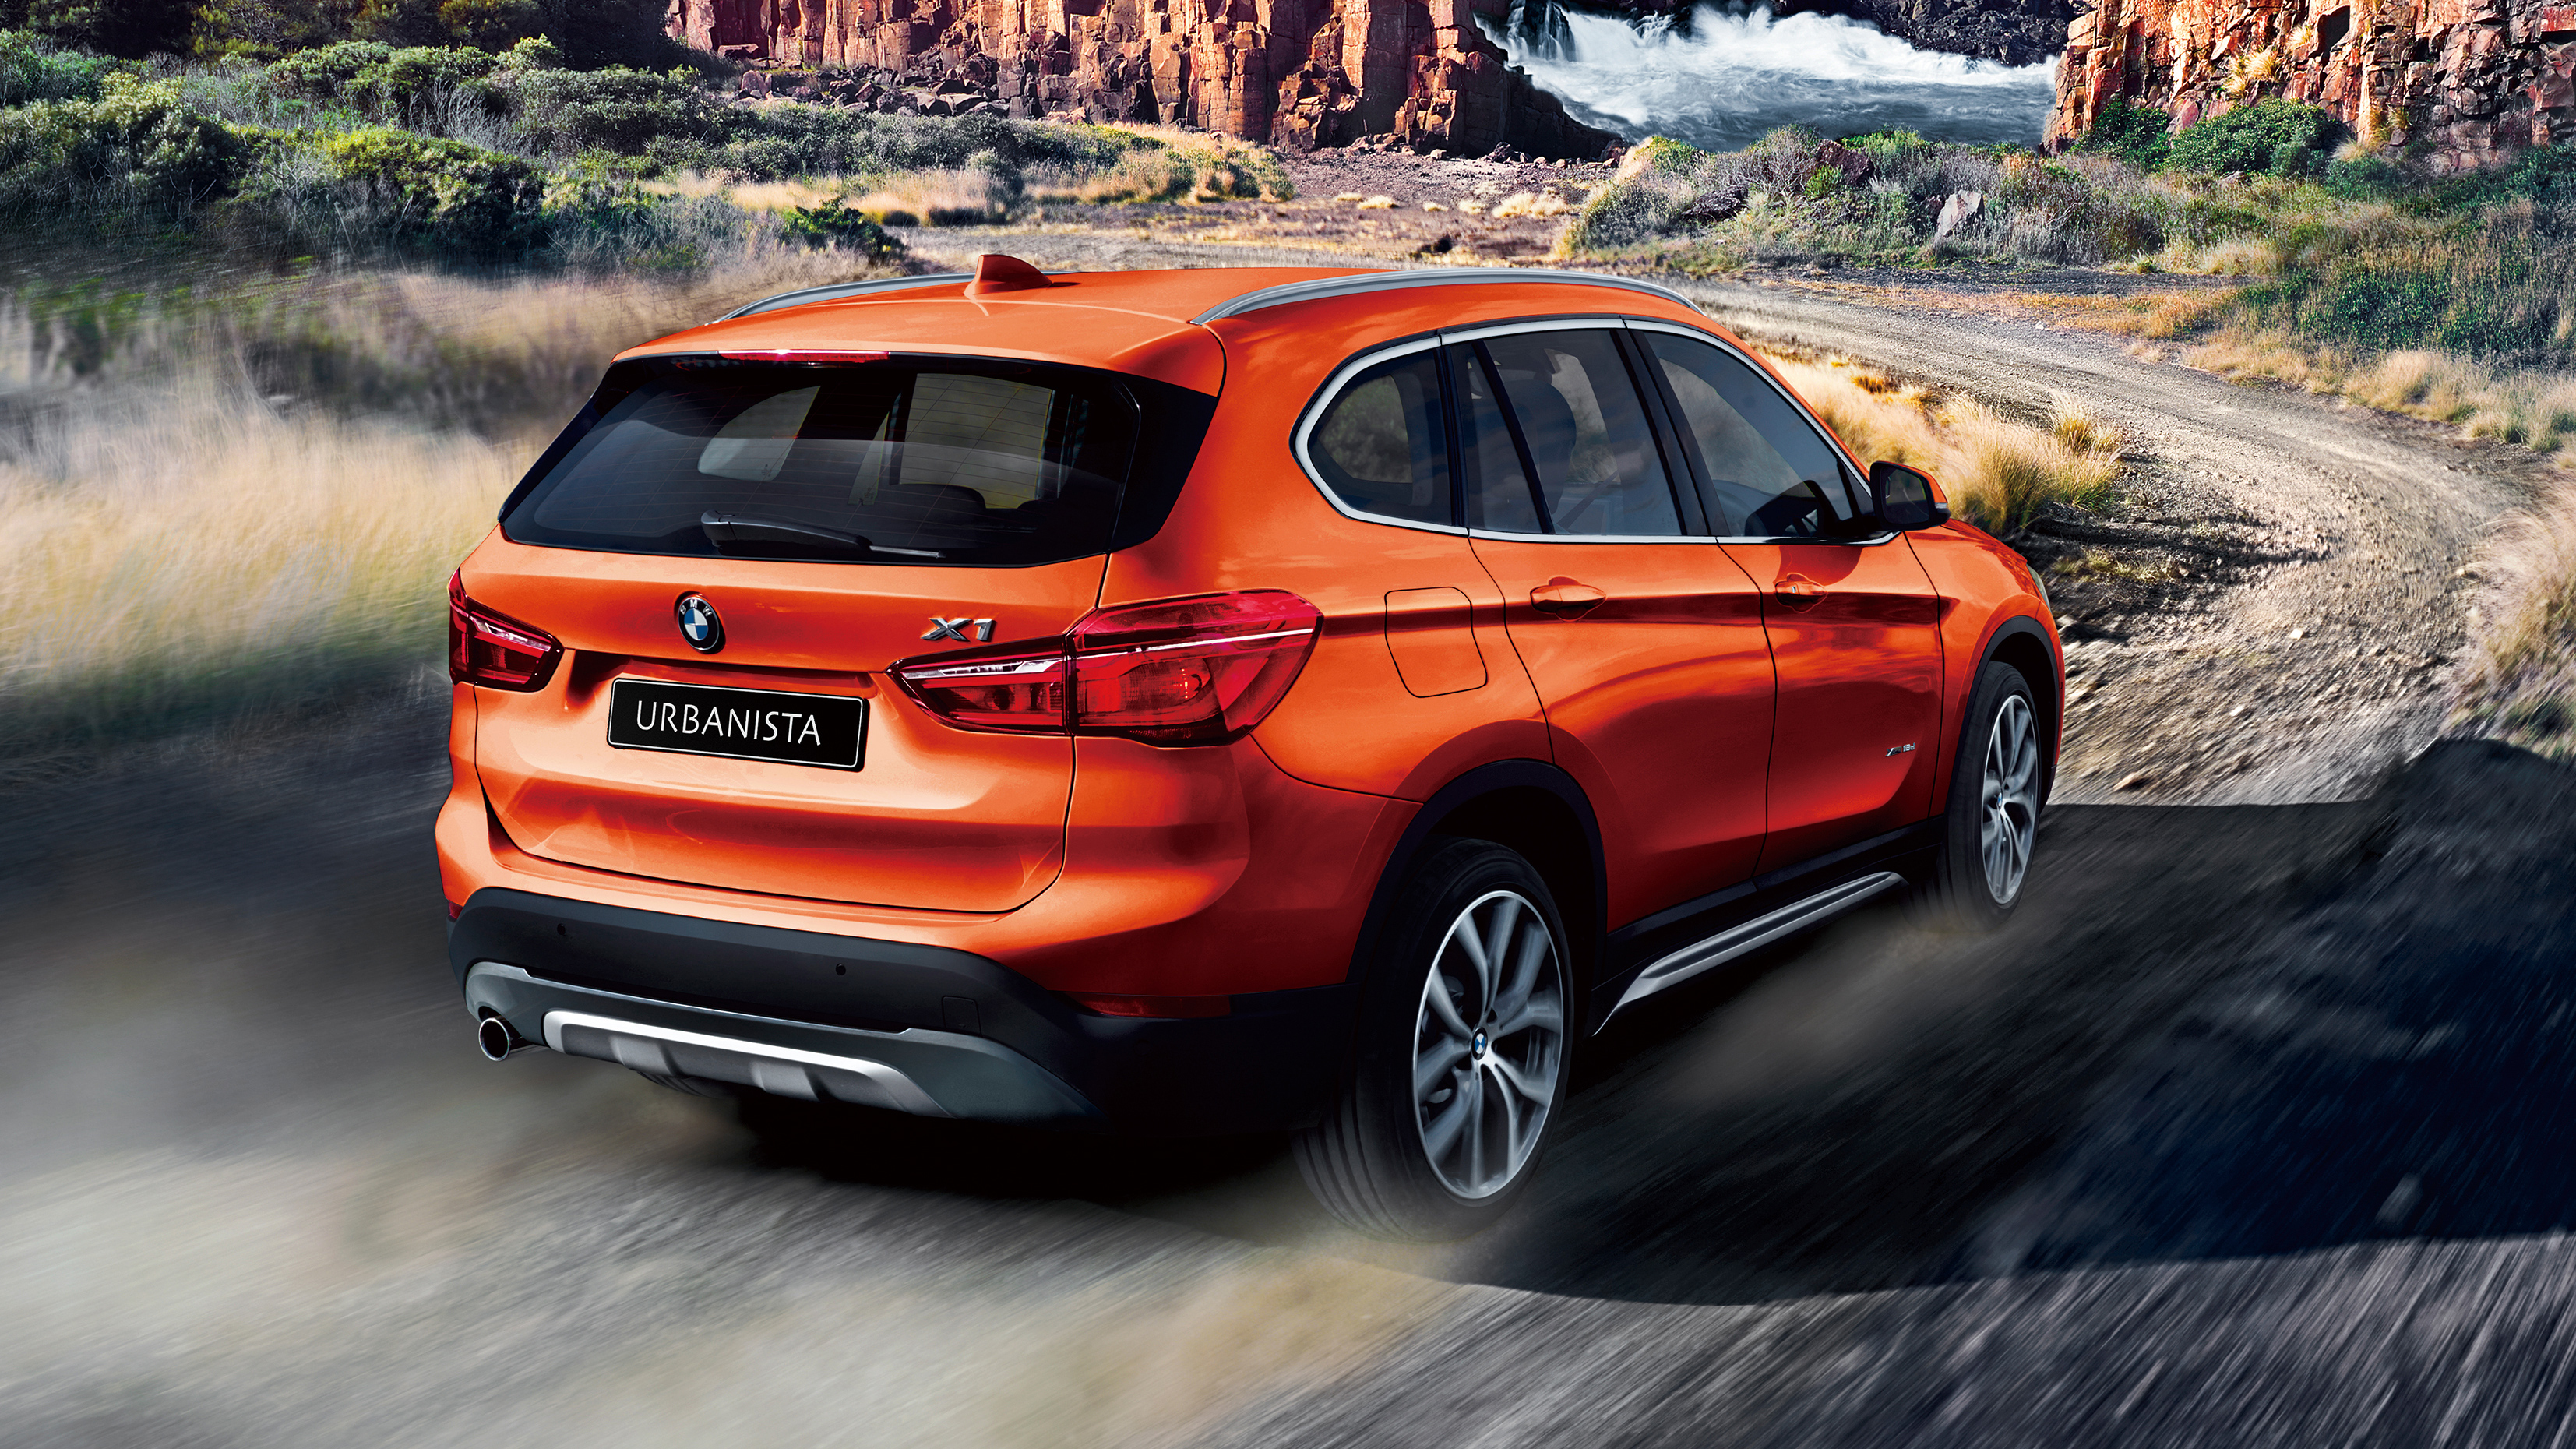 2018 BMW X1 xDrive18d Urbanista 2 Wallpaper | HD Car ...